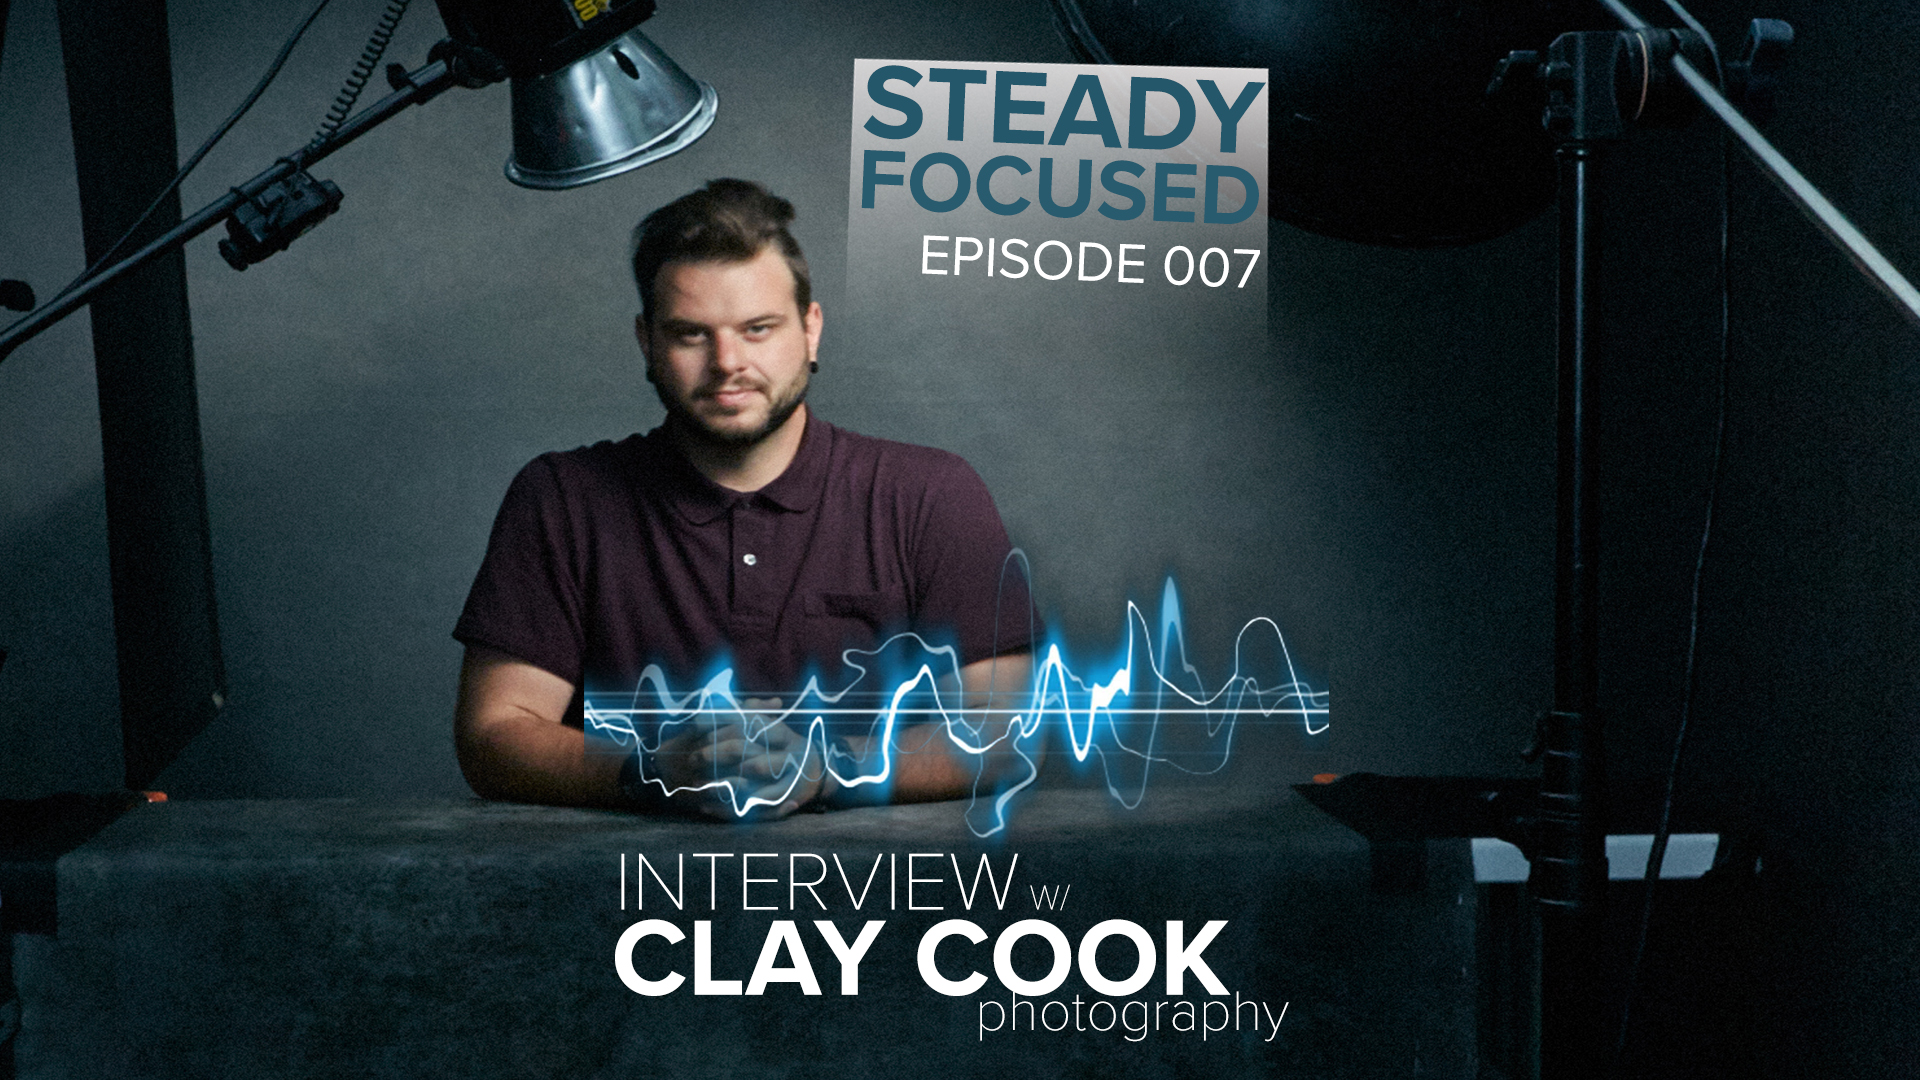 clay-cook-photography-interview-steady-focused